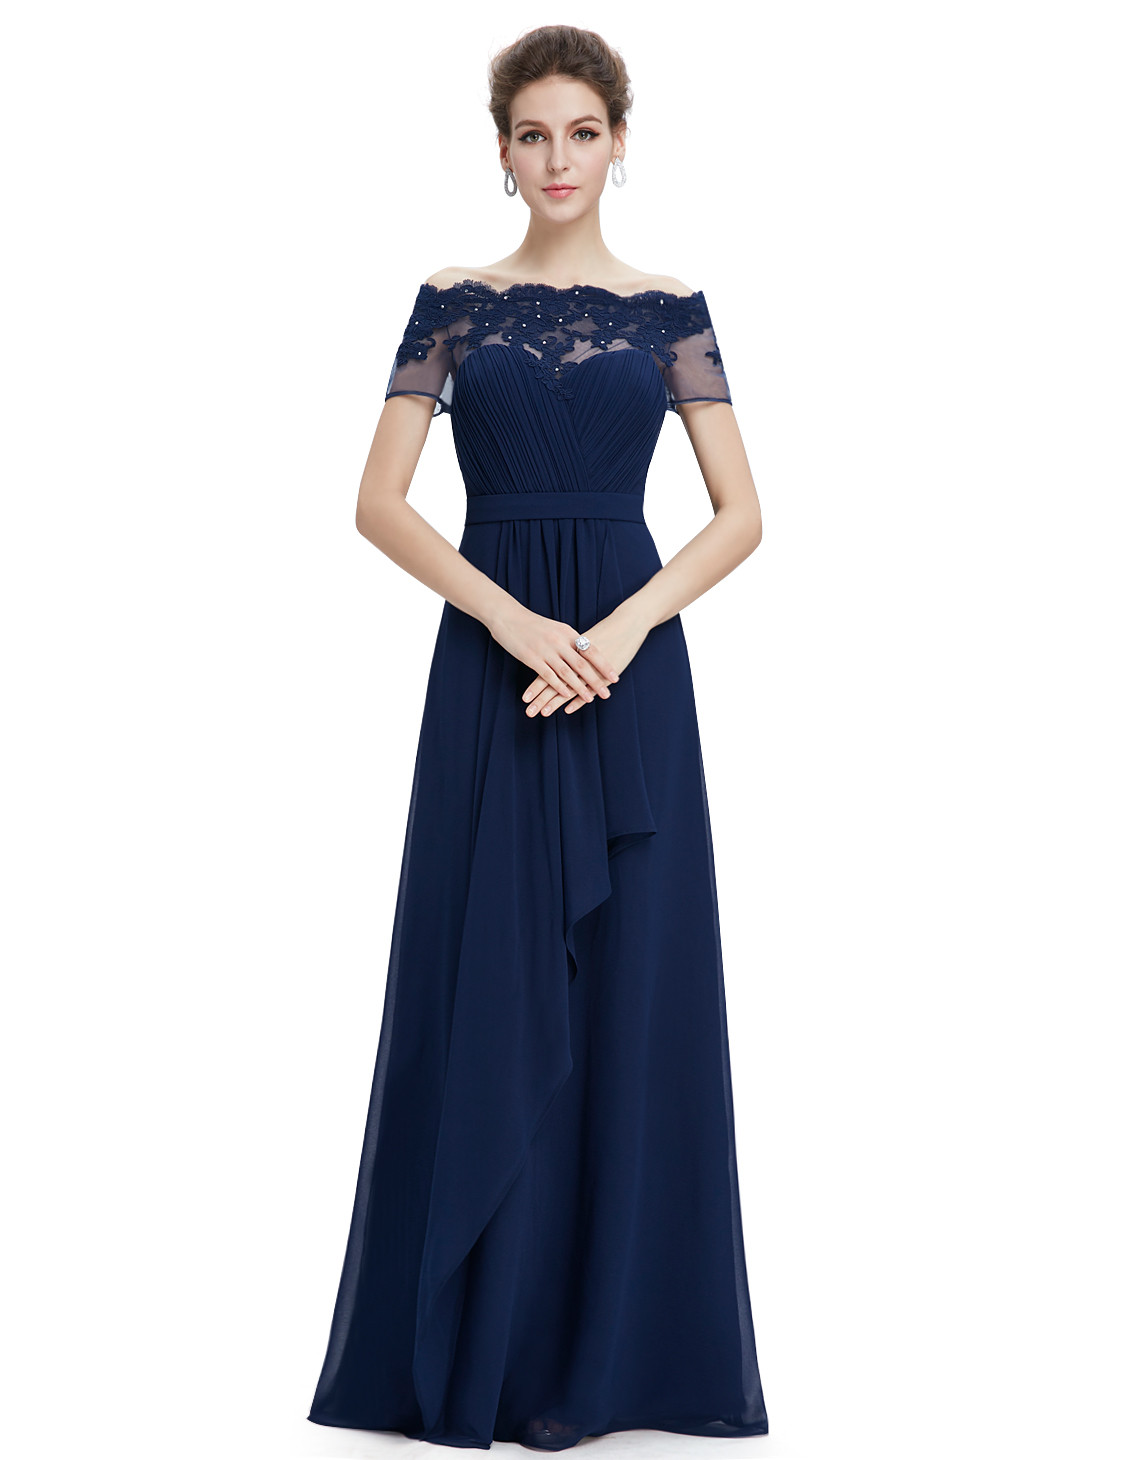 Boat neck navy blue lacy bridesmaid dress uk budget bridesmaid boat neck navy blue lacy bridesmaid dress uk ombrellifo Image collections